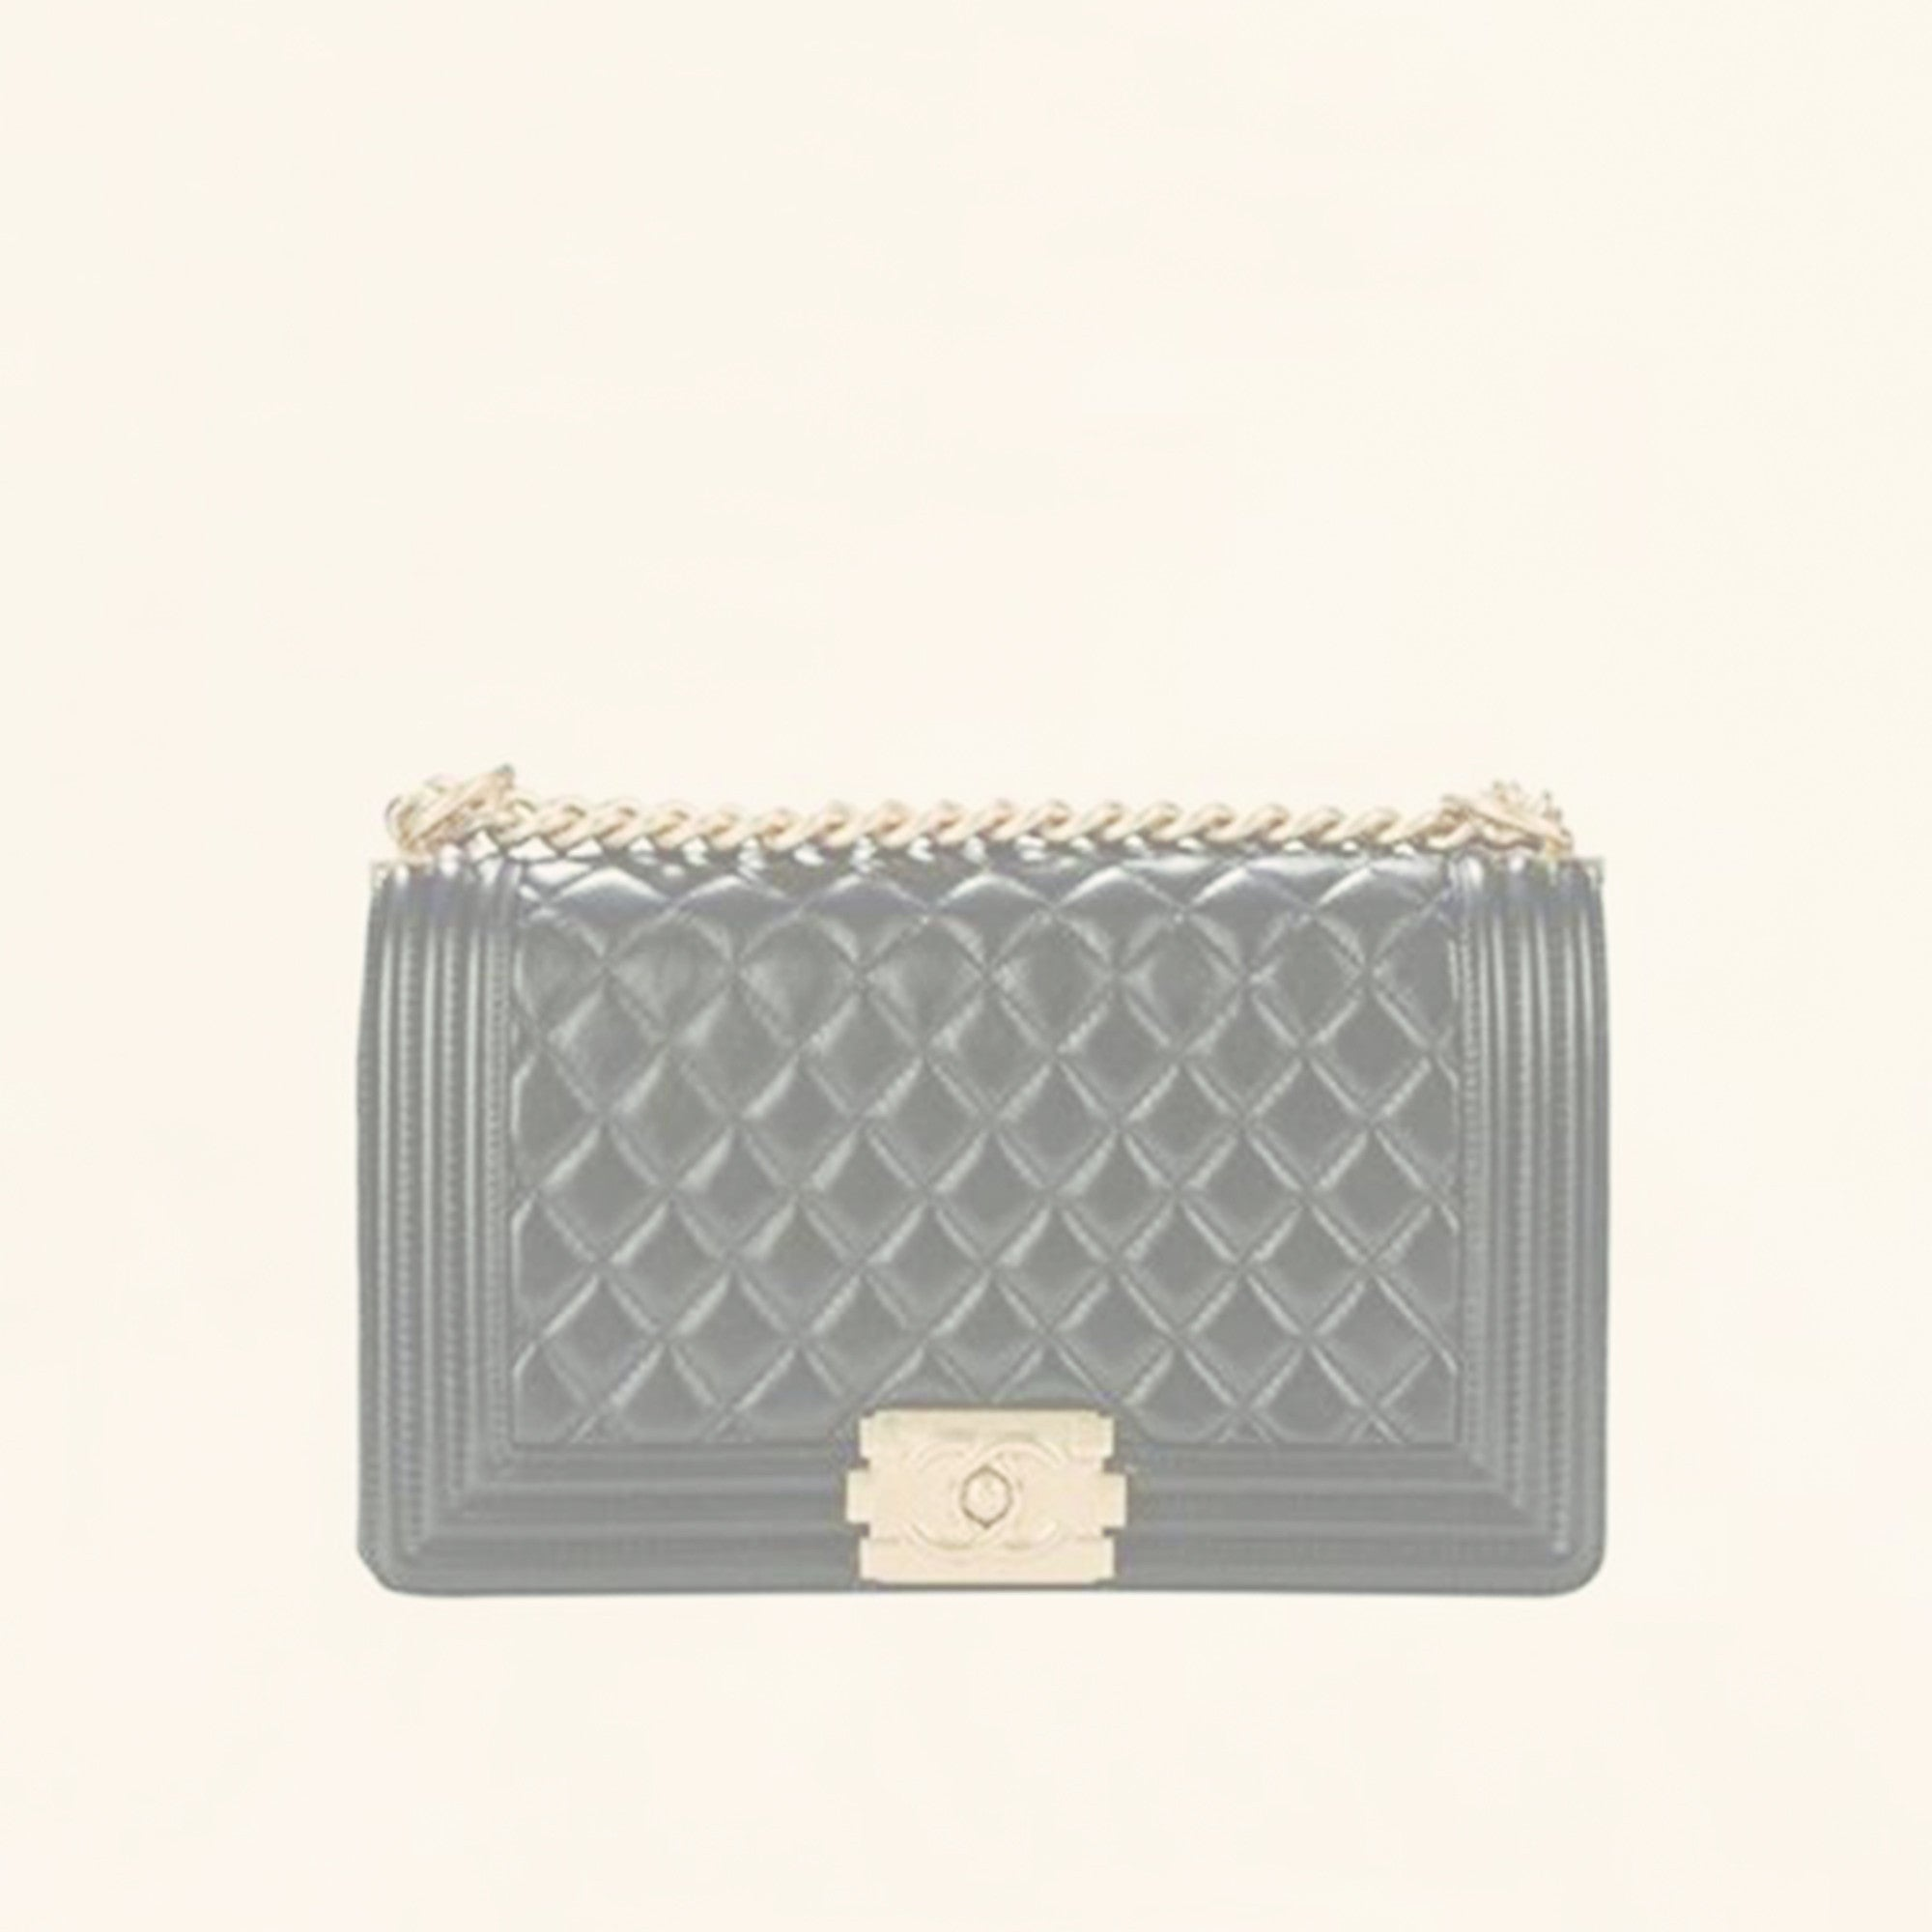 544def0abcf5 Chanel | Quilted Lambskin Boy Flap Bag | Old Medium - The-Collectory